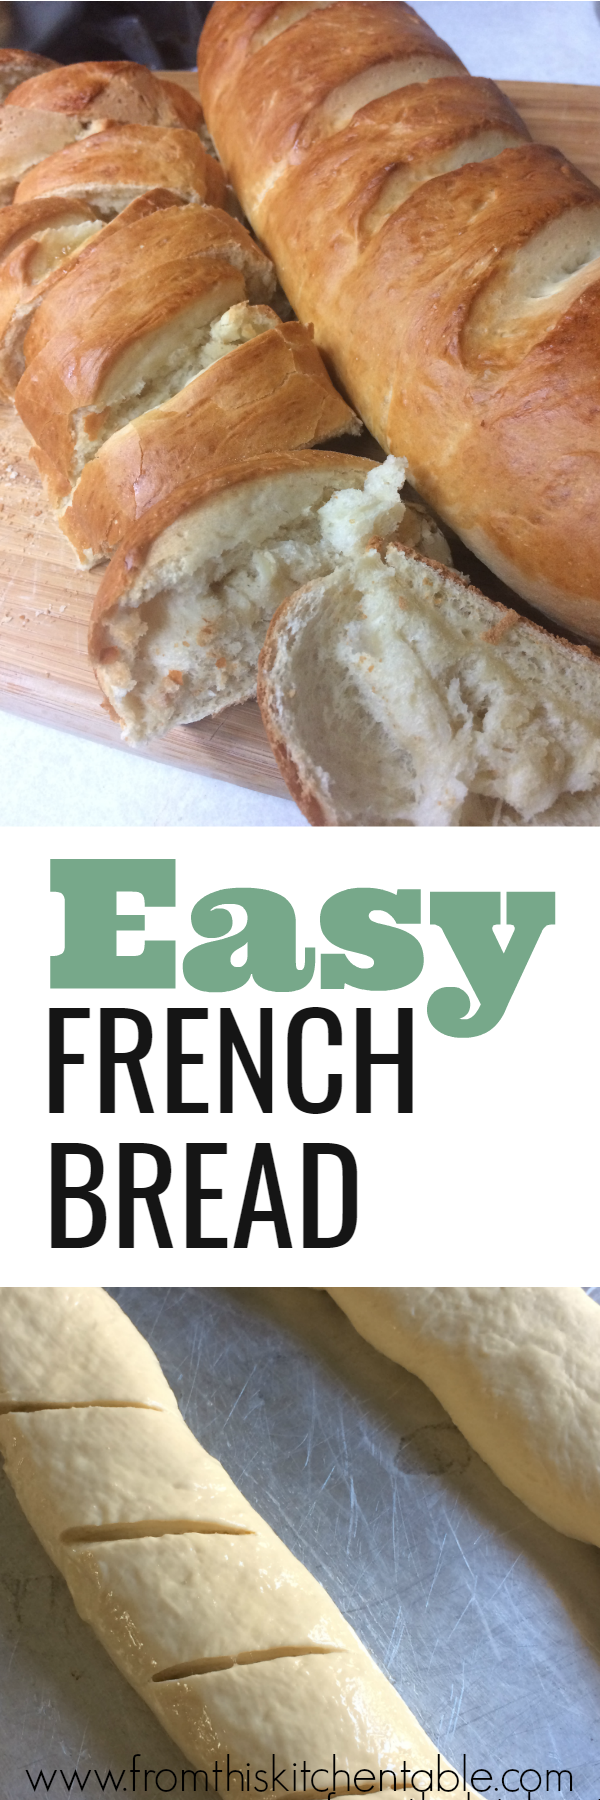 Delicious and easy homemade french bread! You'll make this all the time.